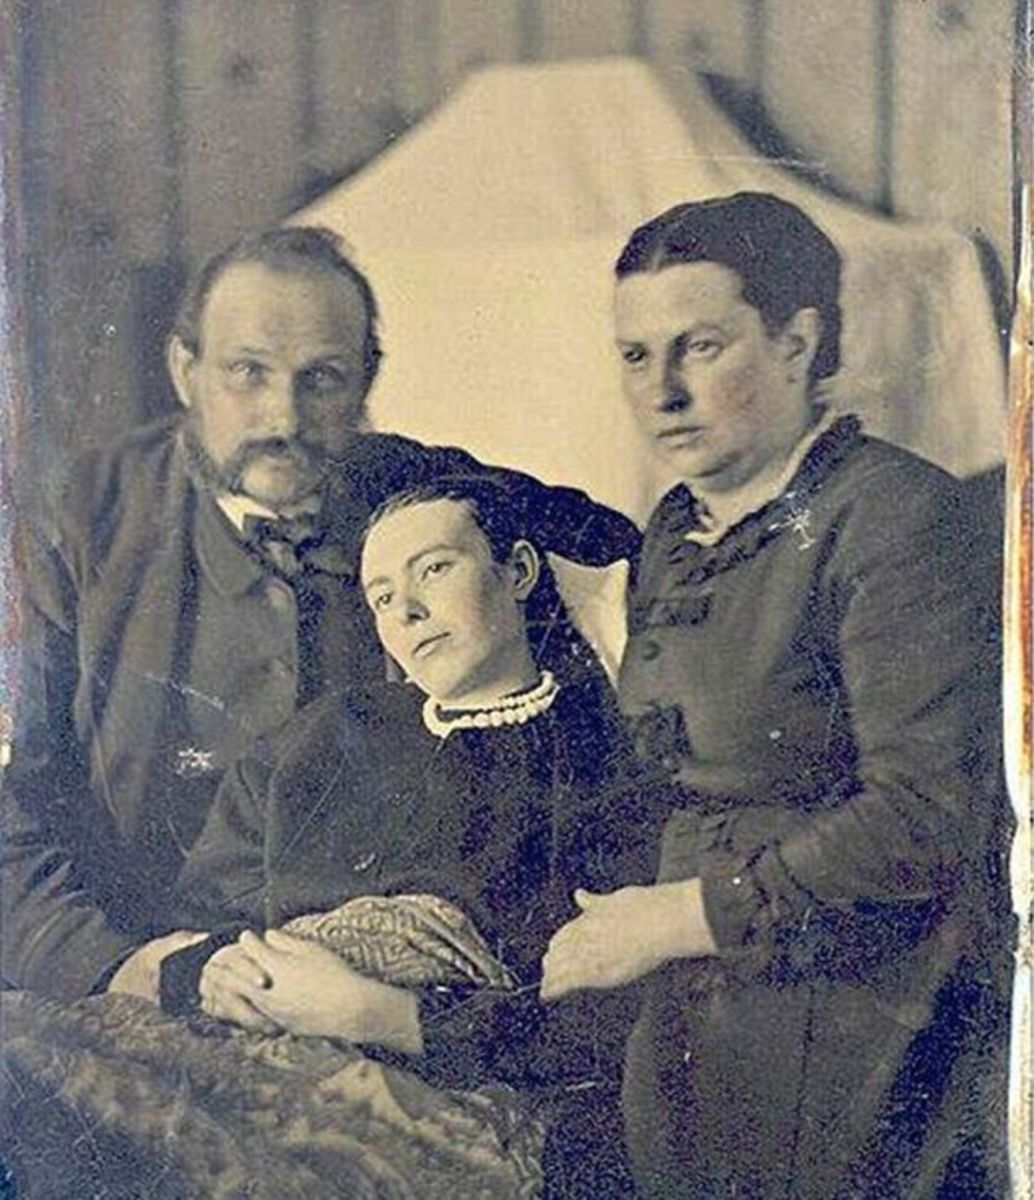 Two parents pose for their one and only family portrait with their deceased daughter, a likely victim of scarlet fever or tuberculosis.